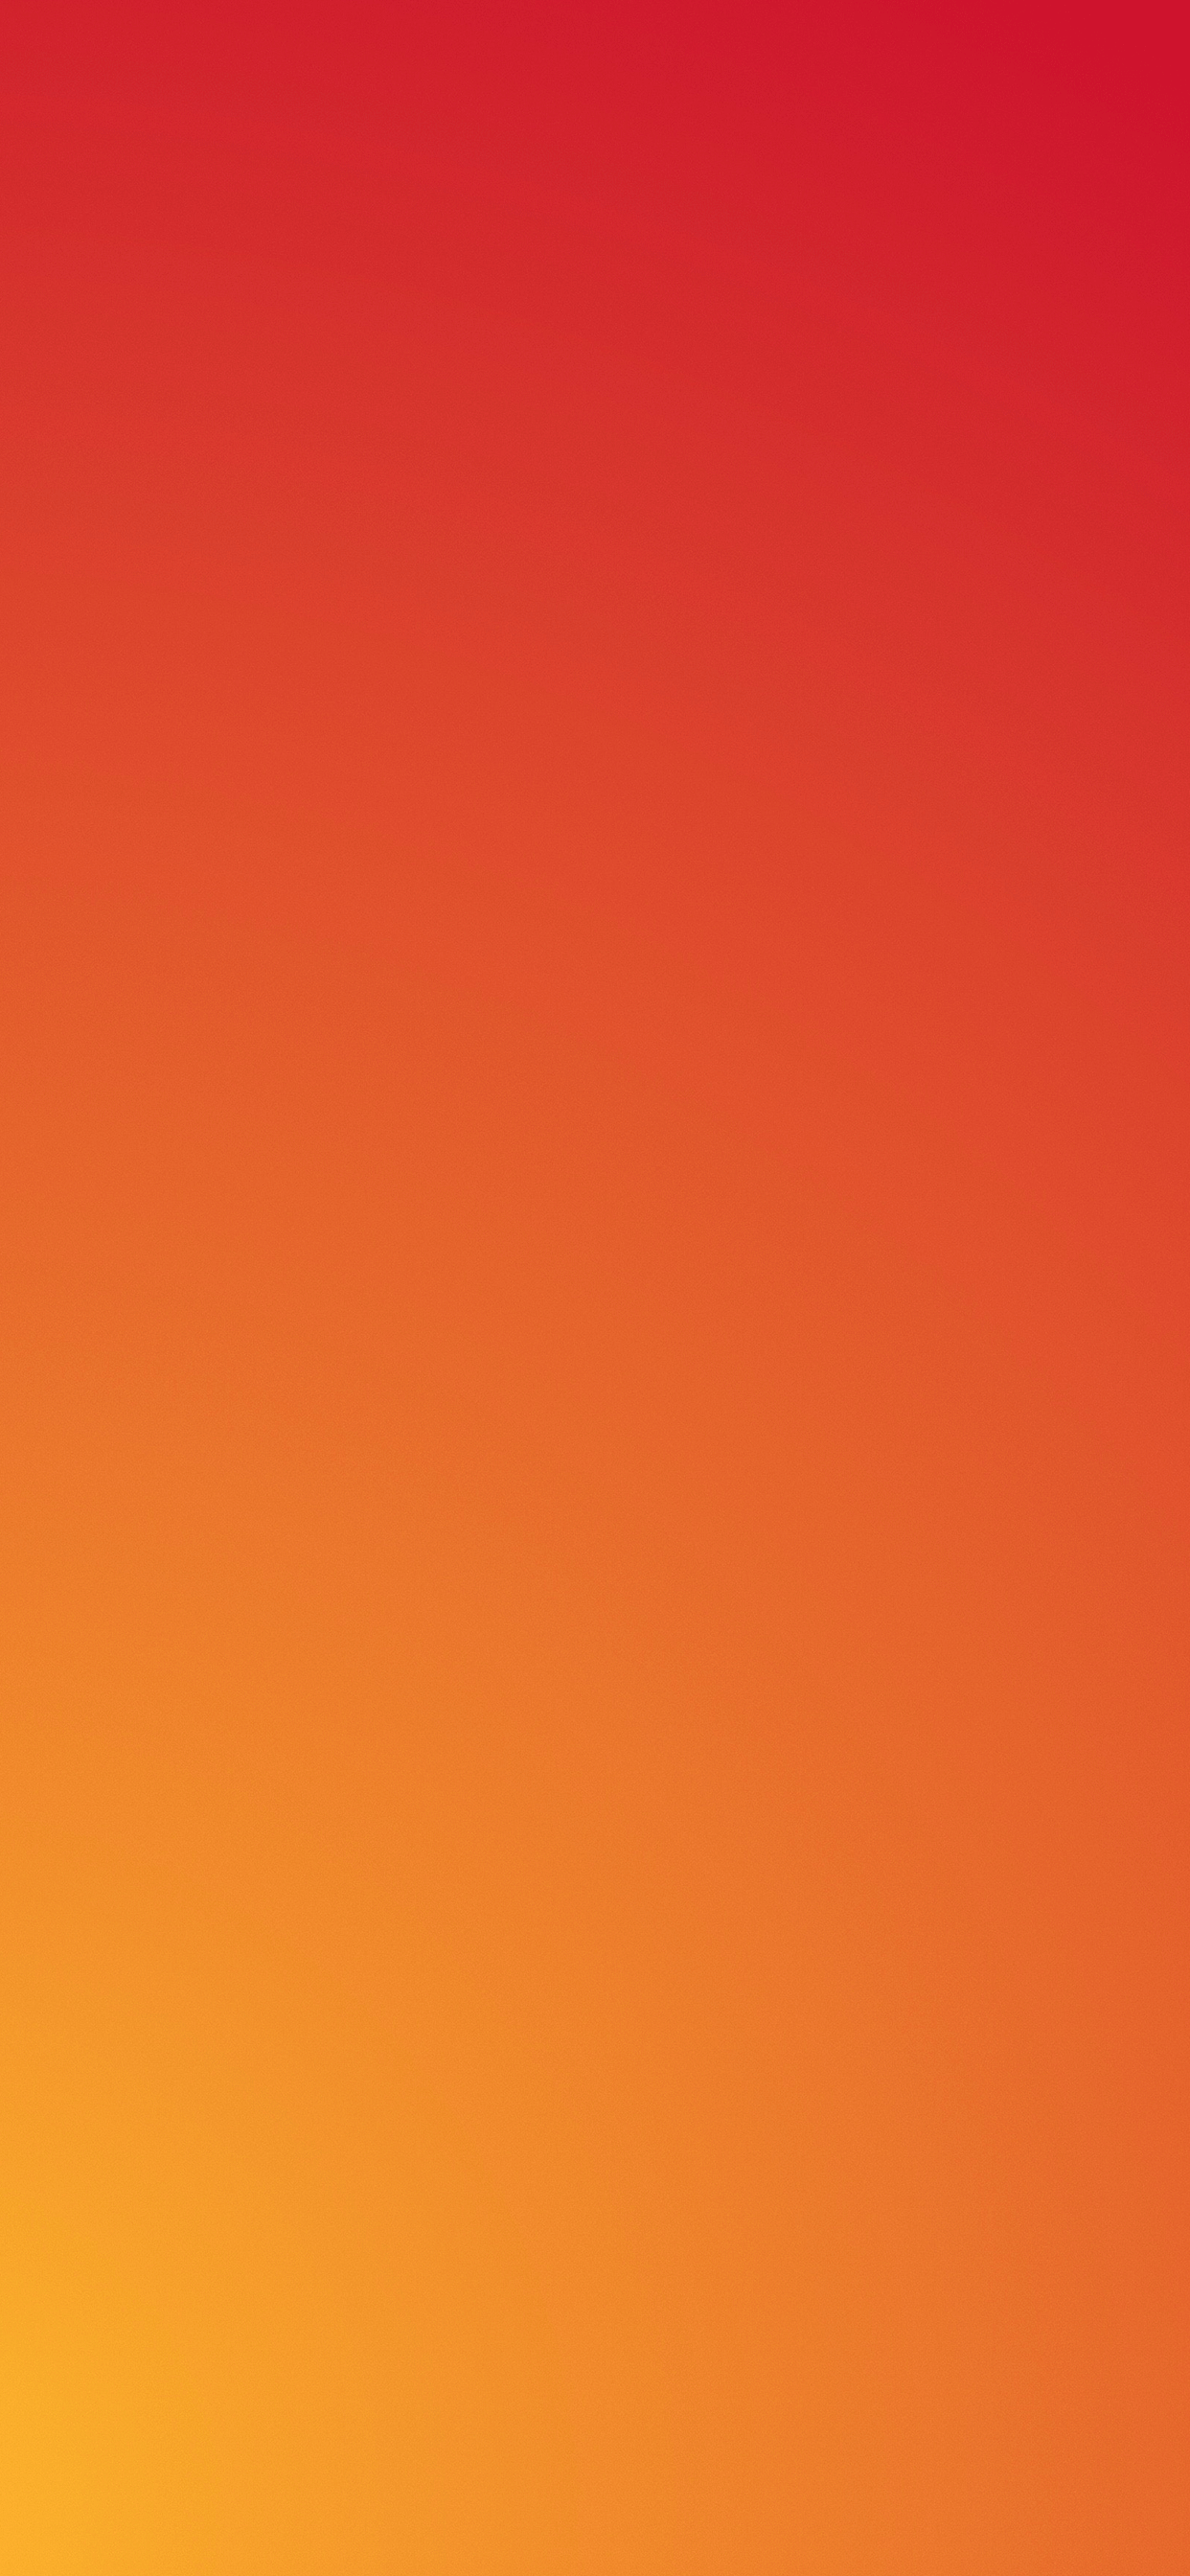 iPhone wallpapers gradient dark orange red Fonds d'écran iPhone du 21/06/2019